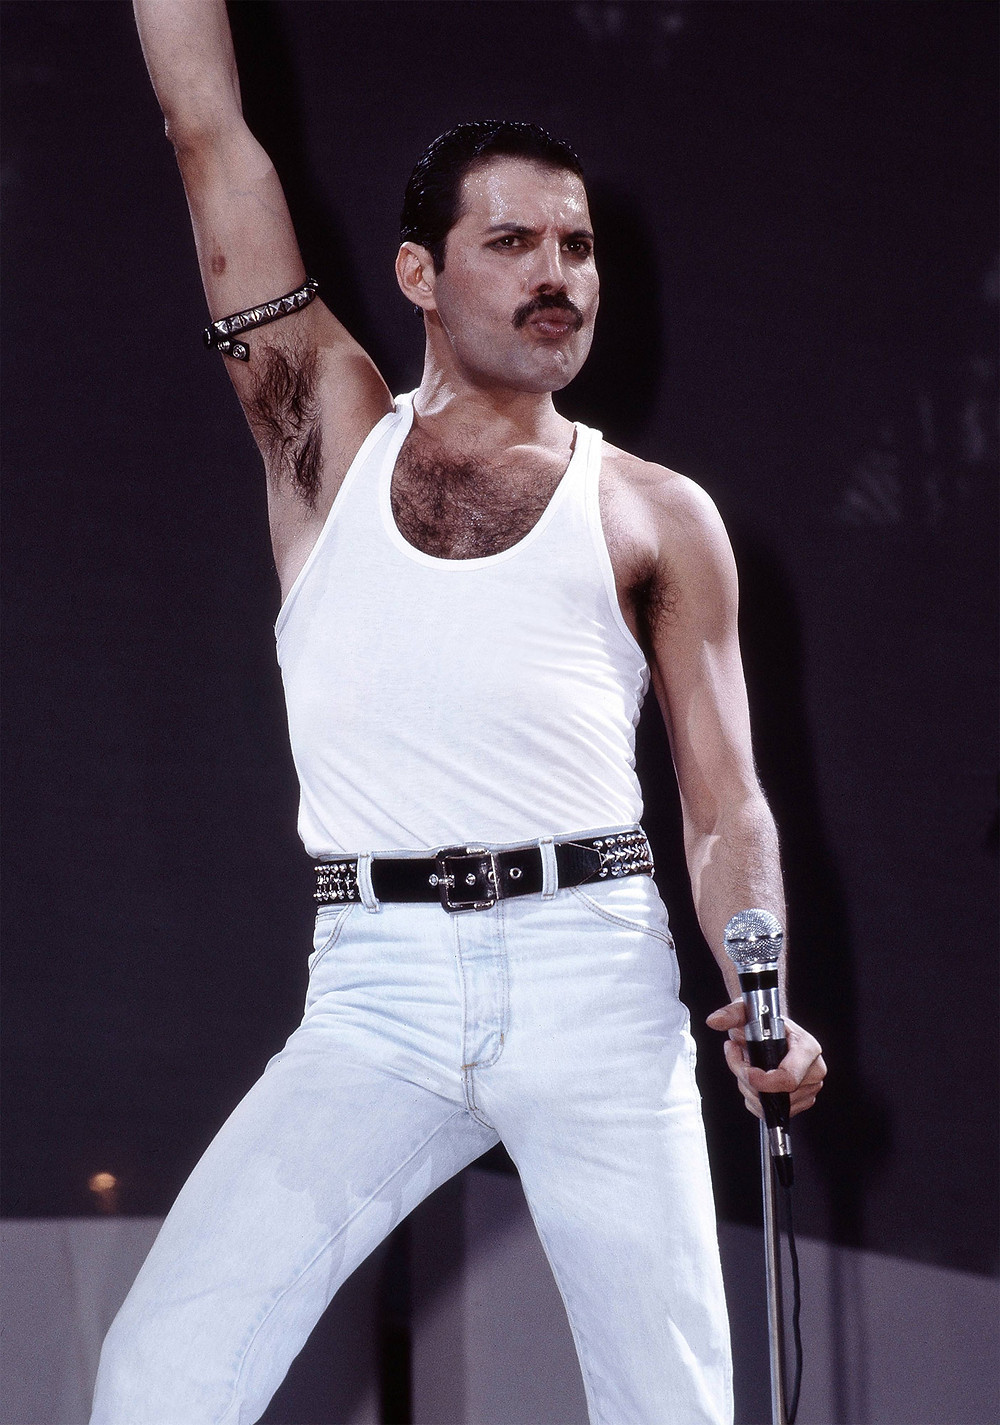 The legendary Freddie Mercury, British singer, songwriter, record producer, and lead vocalist of the rock band Queen. Regarded one of the greatest lead singers in history